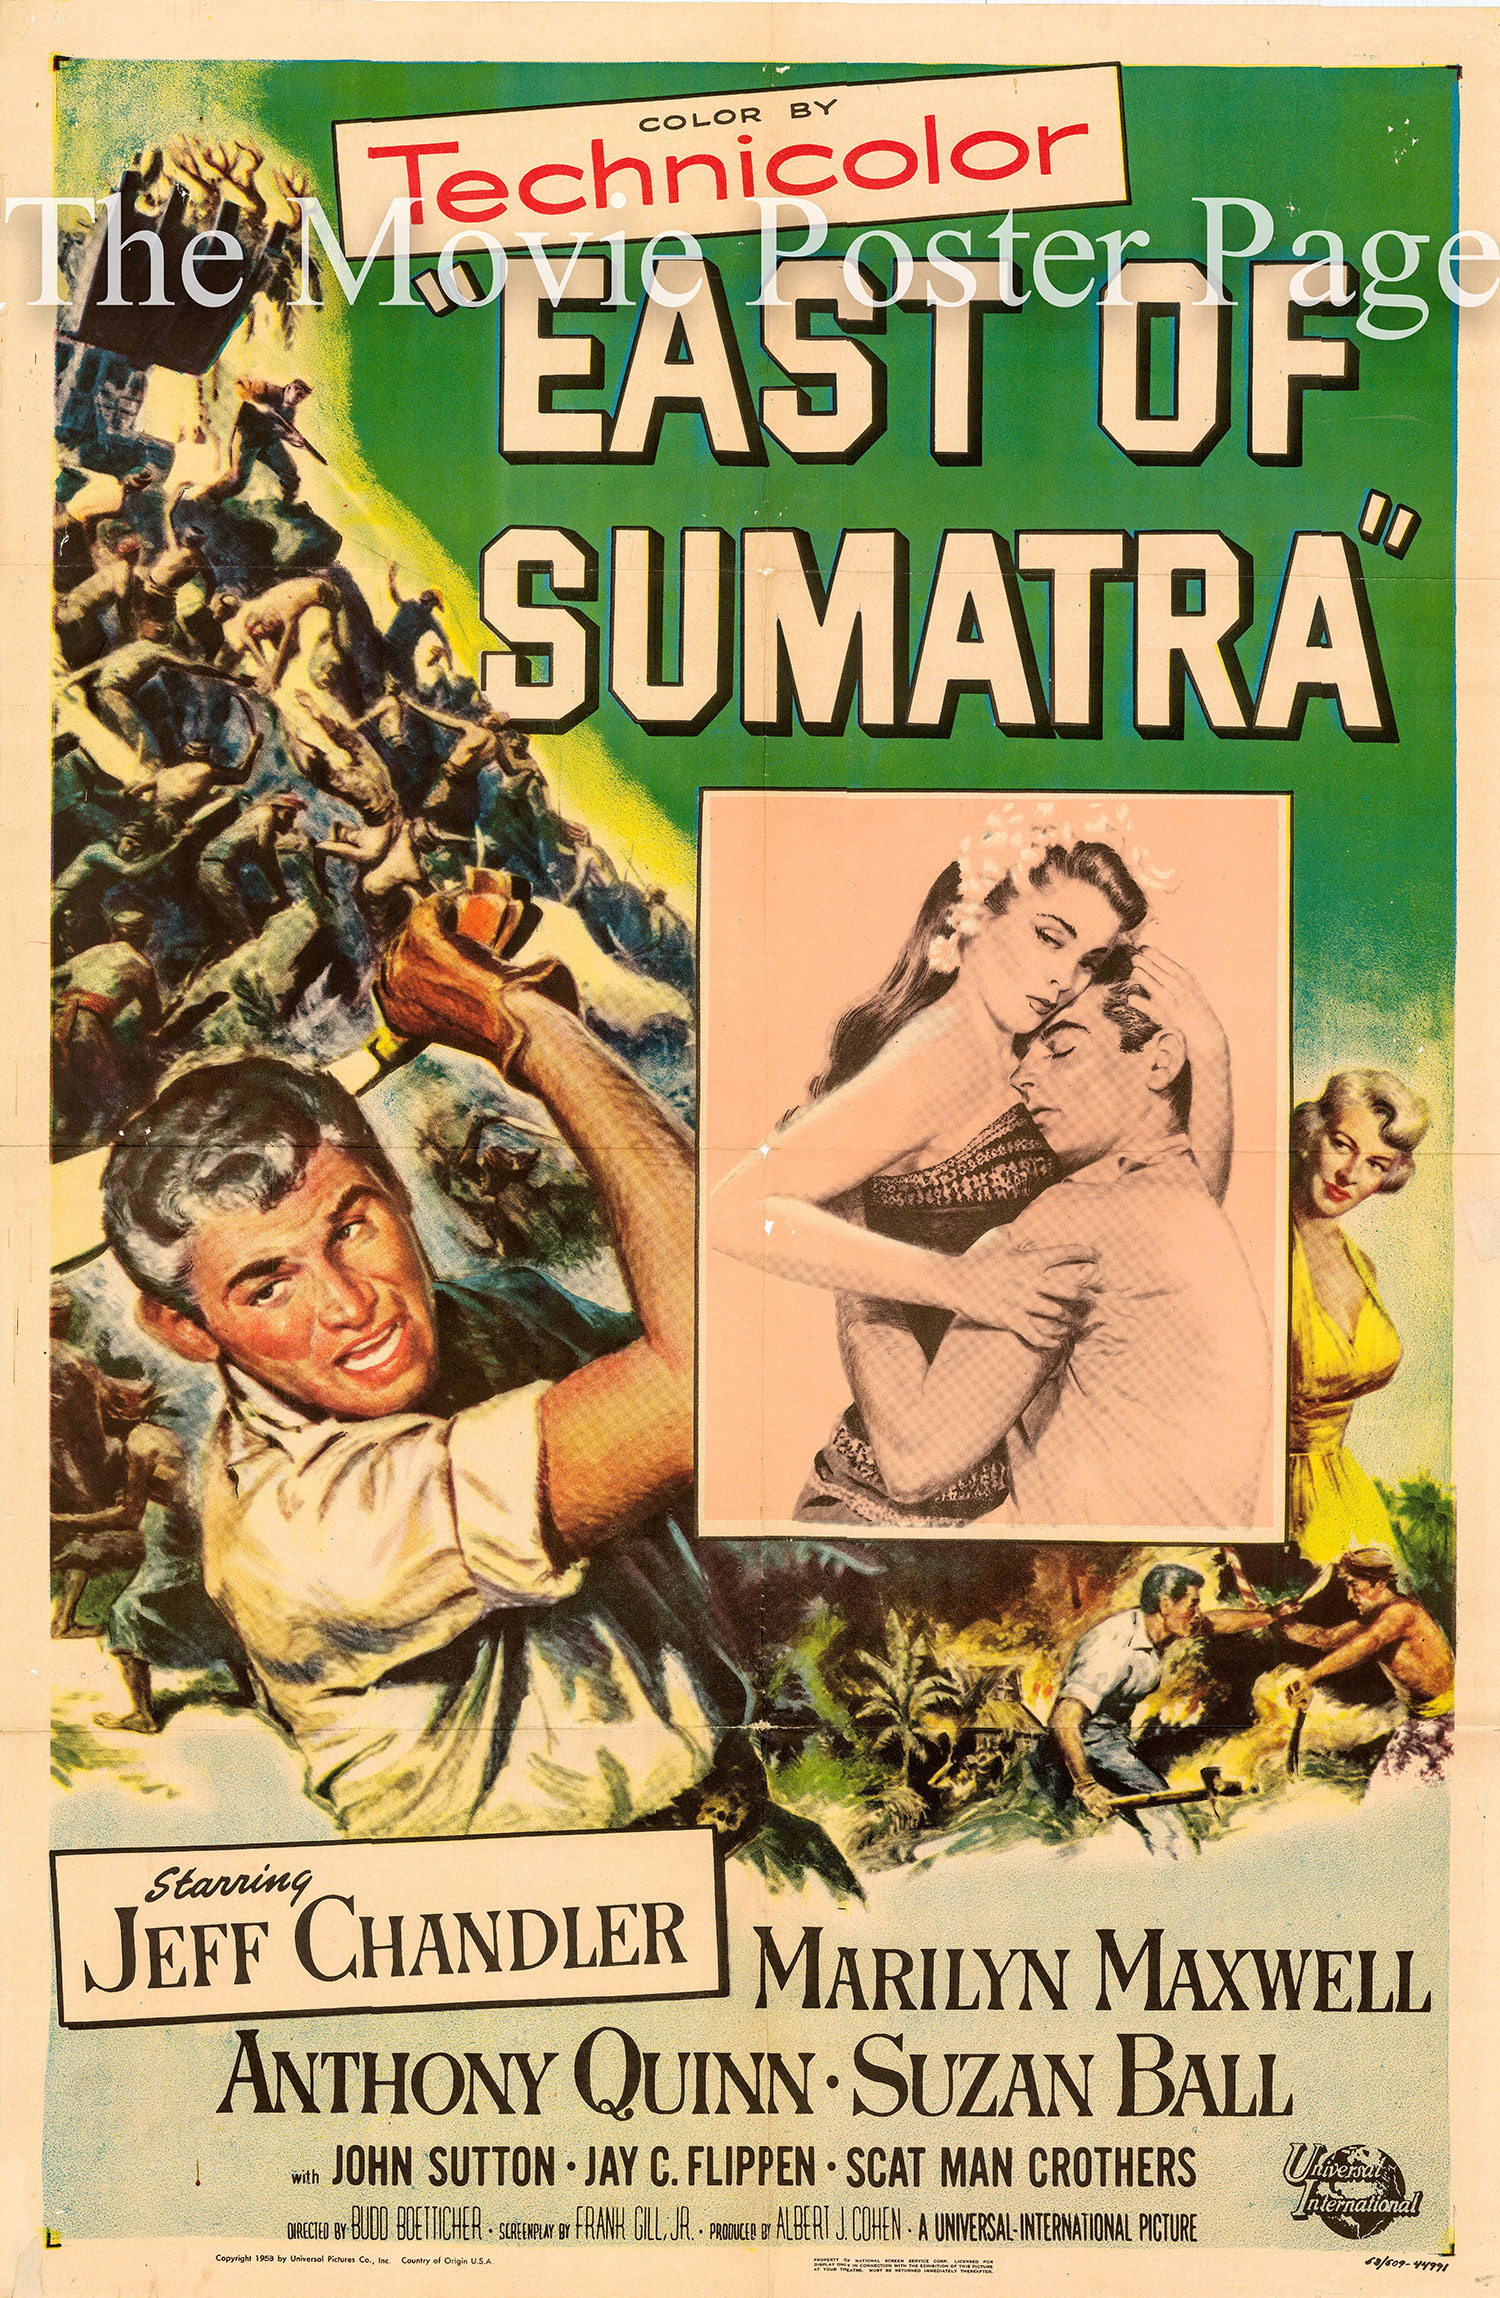 Pictured is a US one-sheet promotional poster for the 1953 Budd Boetticher film East of Sumatra starring Jeff Chandler, based on a story by Louis L'Amour.